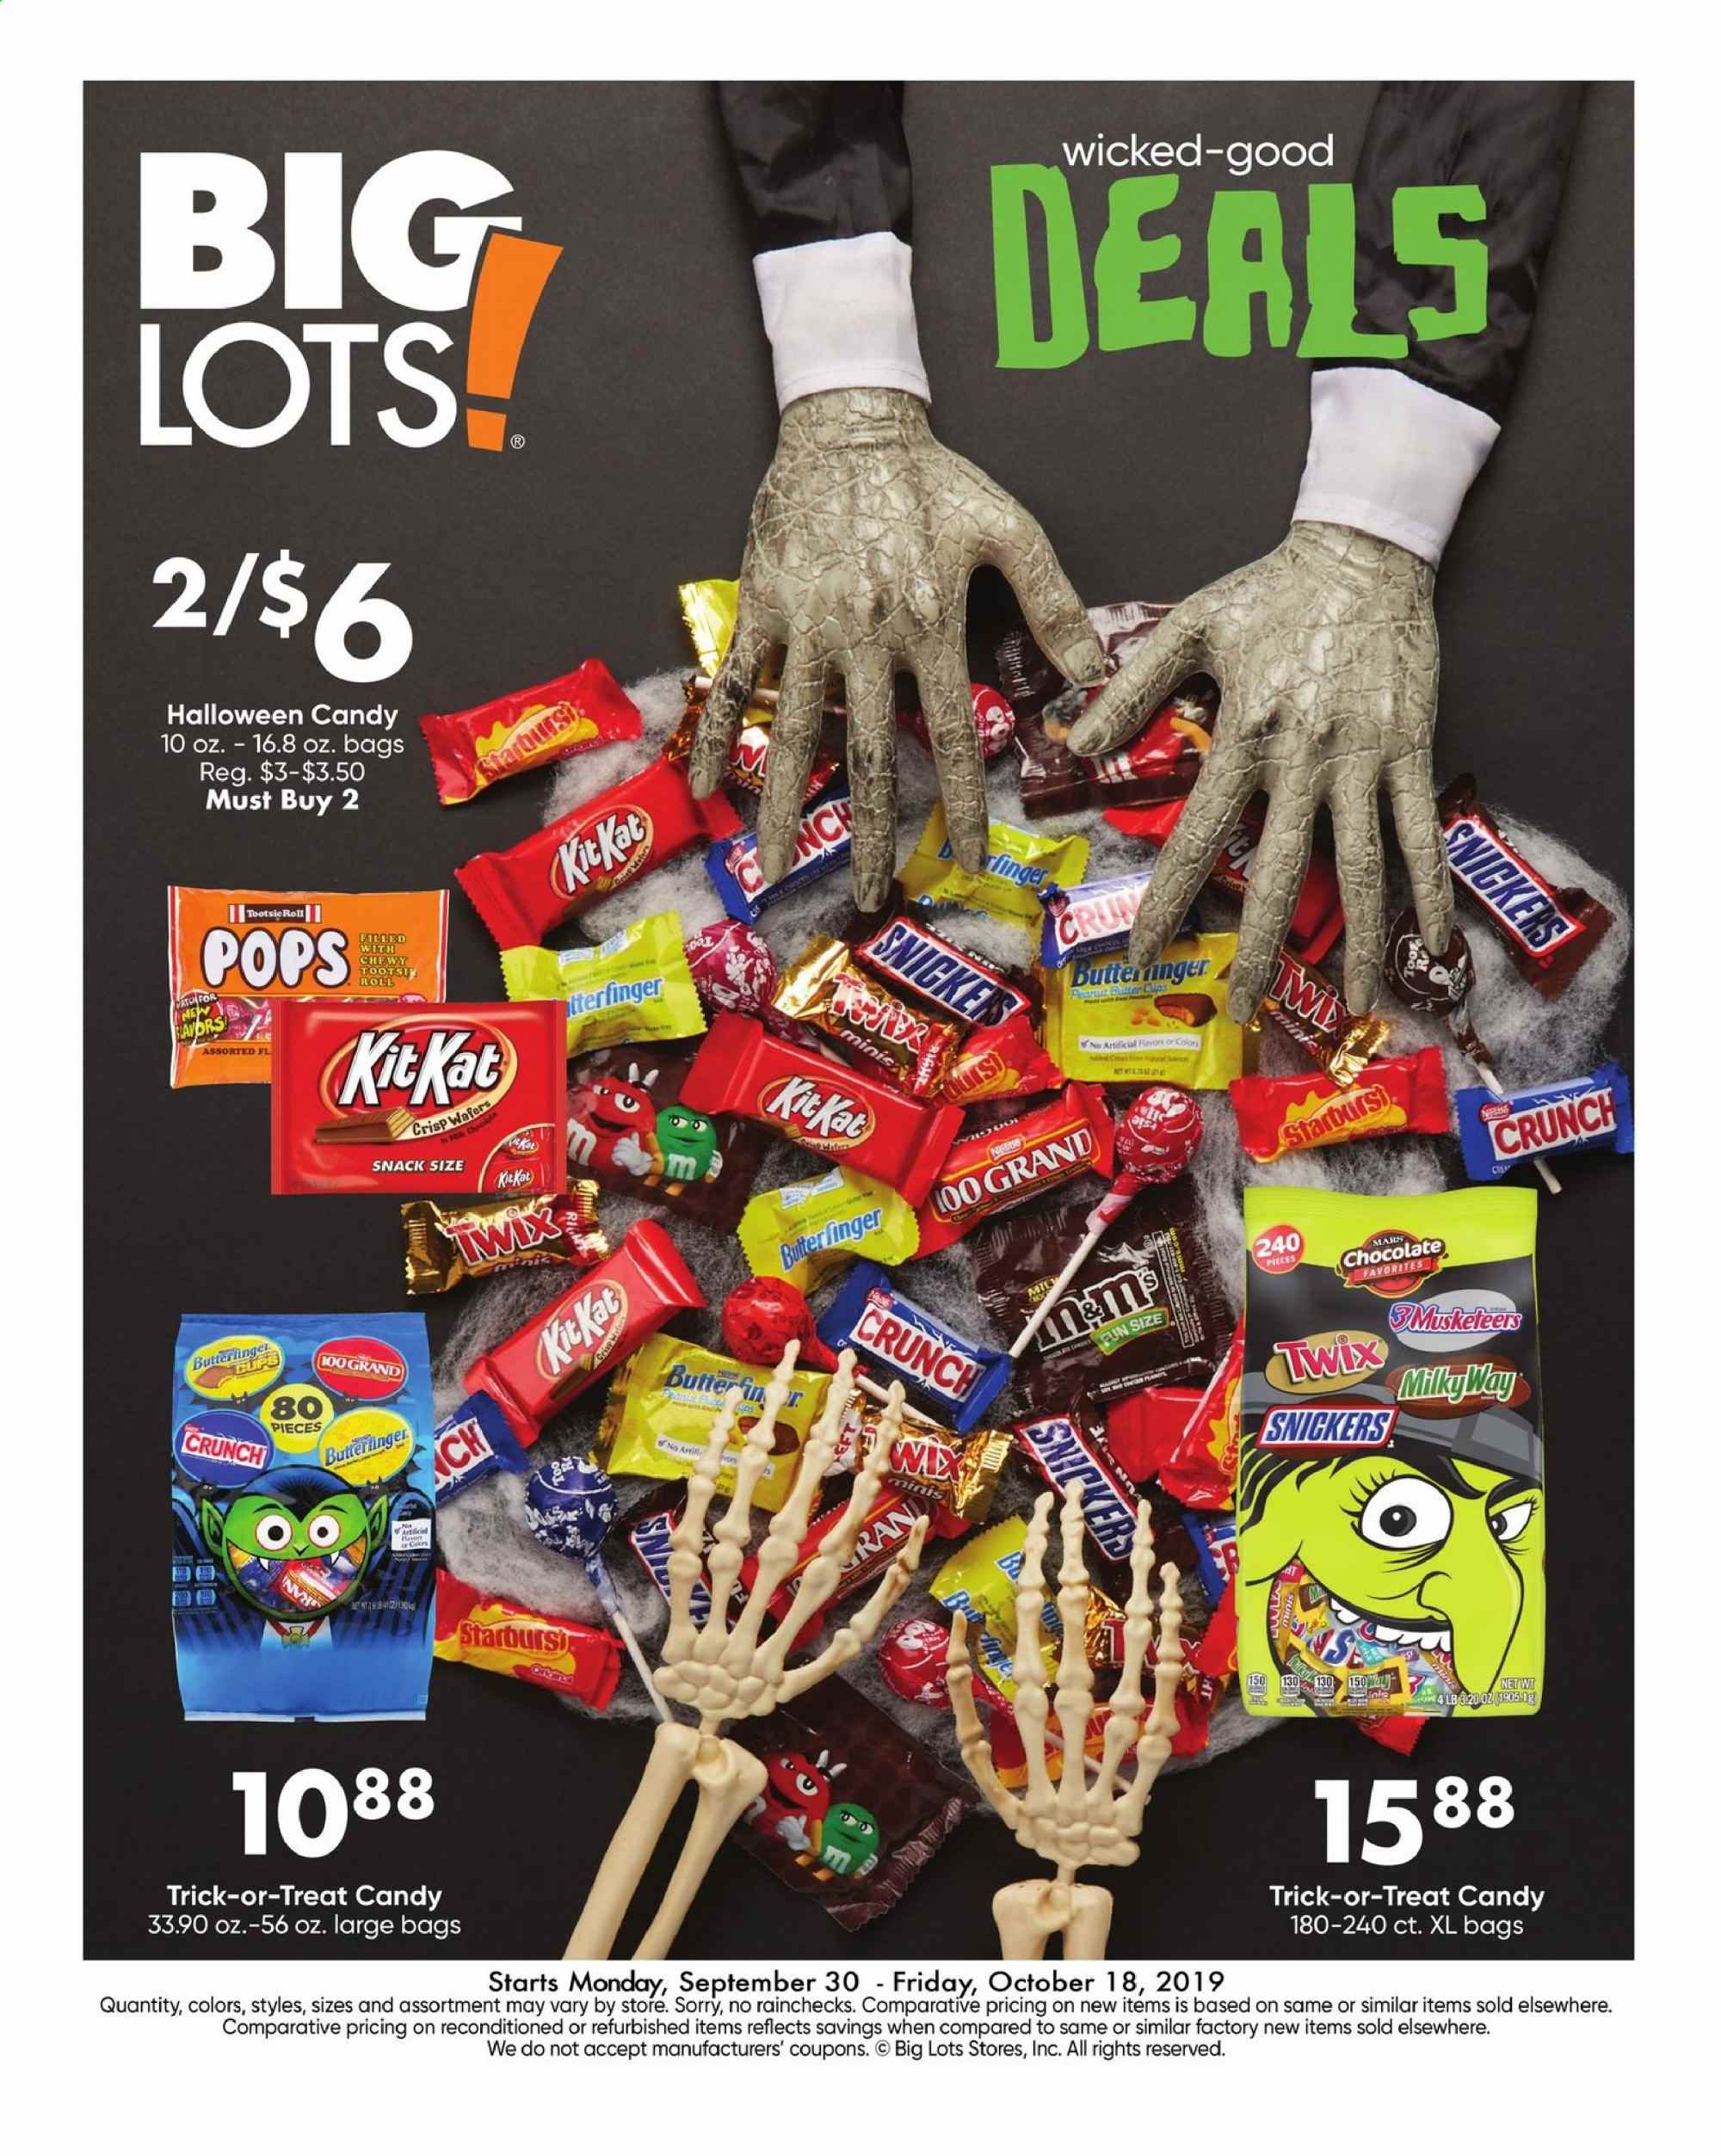 Big Lots Flyer - 09.30.2019 - 10.18.2019 - Sales products - wafers, chocolate, candy, Snickers, Twix, Mars, snack, cup, WD, bag. Page 1.